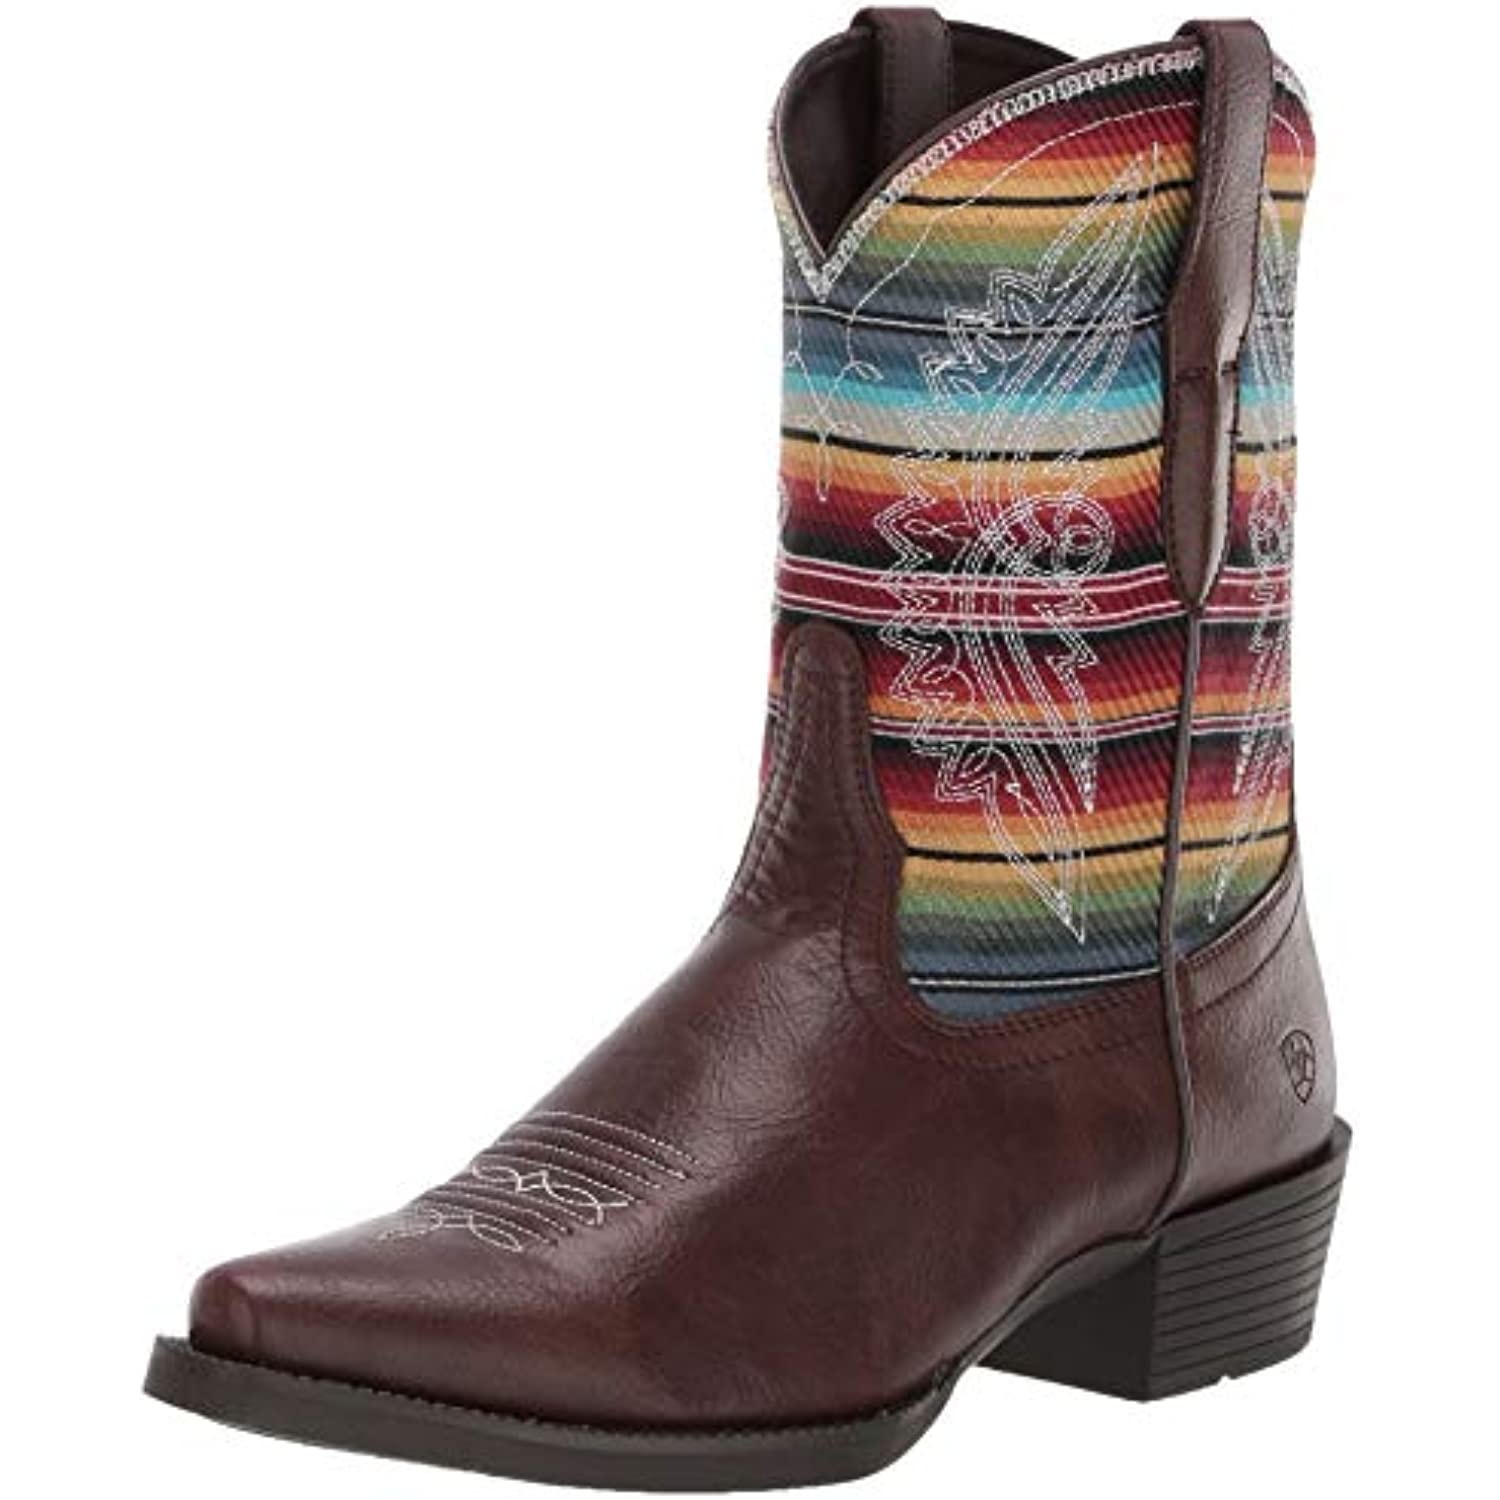 Ariat - Chaussures Chaussures - Stella Western Unis Unisexe - B079RT2ZB6 - be7d8c